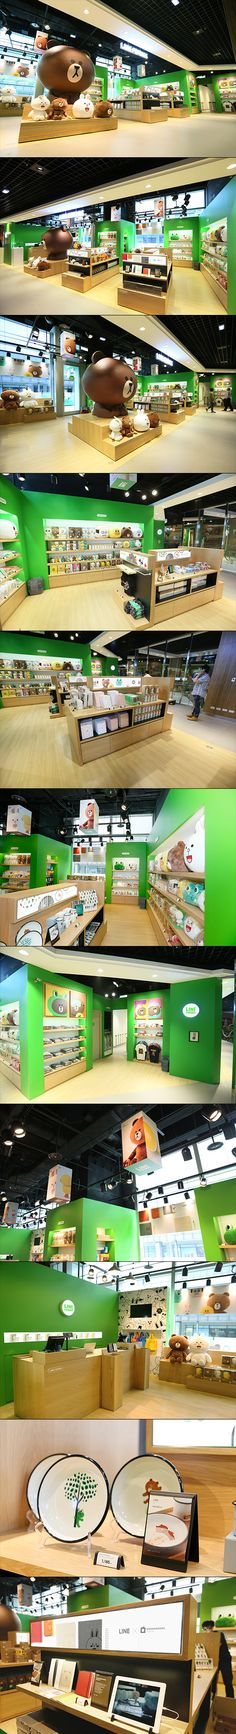 LINE FRIENDS Taipei Store Is Taiwans First Official The Space Designed So That